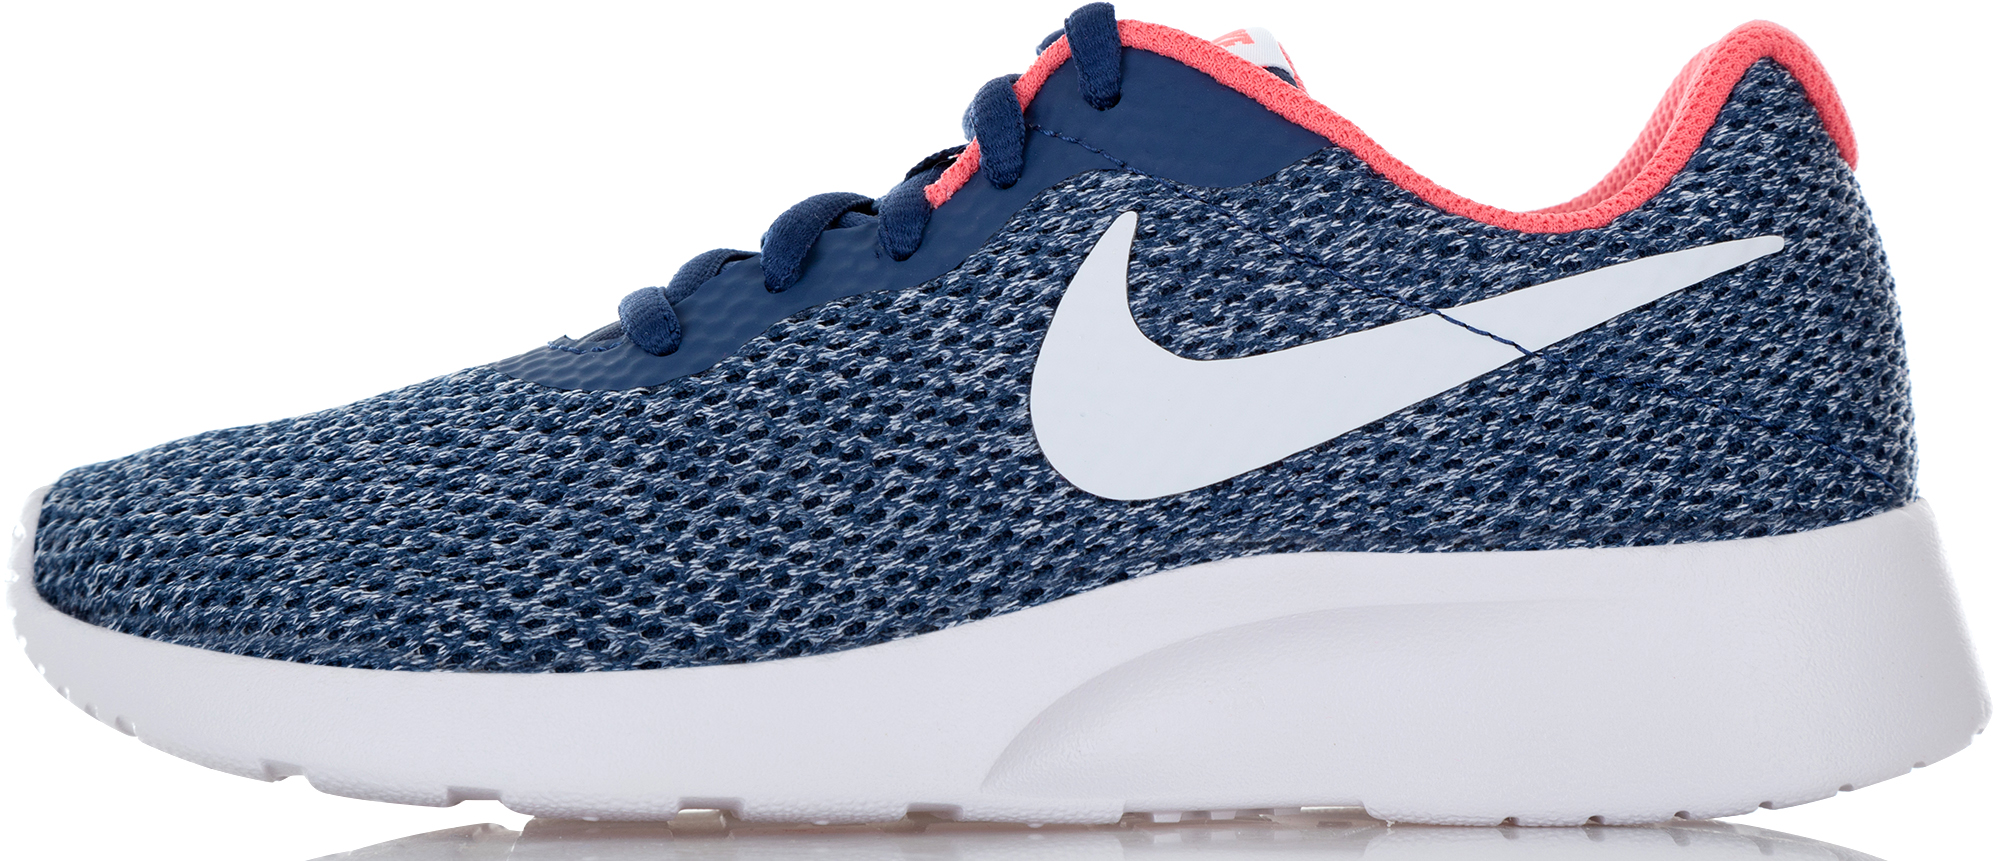 Nike Кроссовки женские Nike Tanjun SE кроссовки nike кроссовки nike md runner 2 749794 410